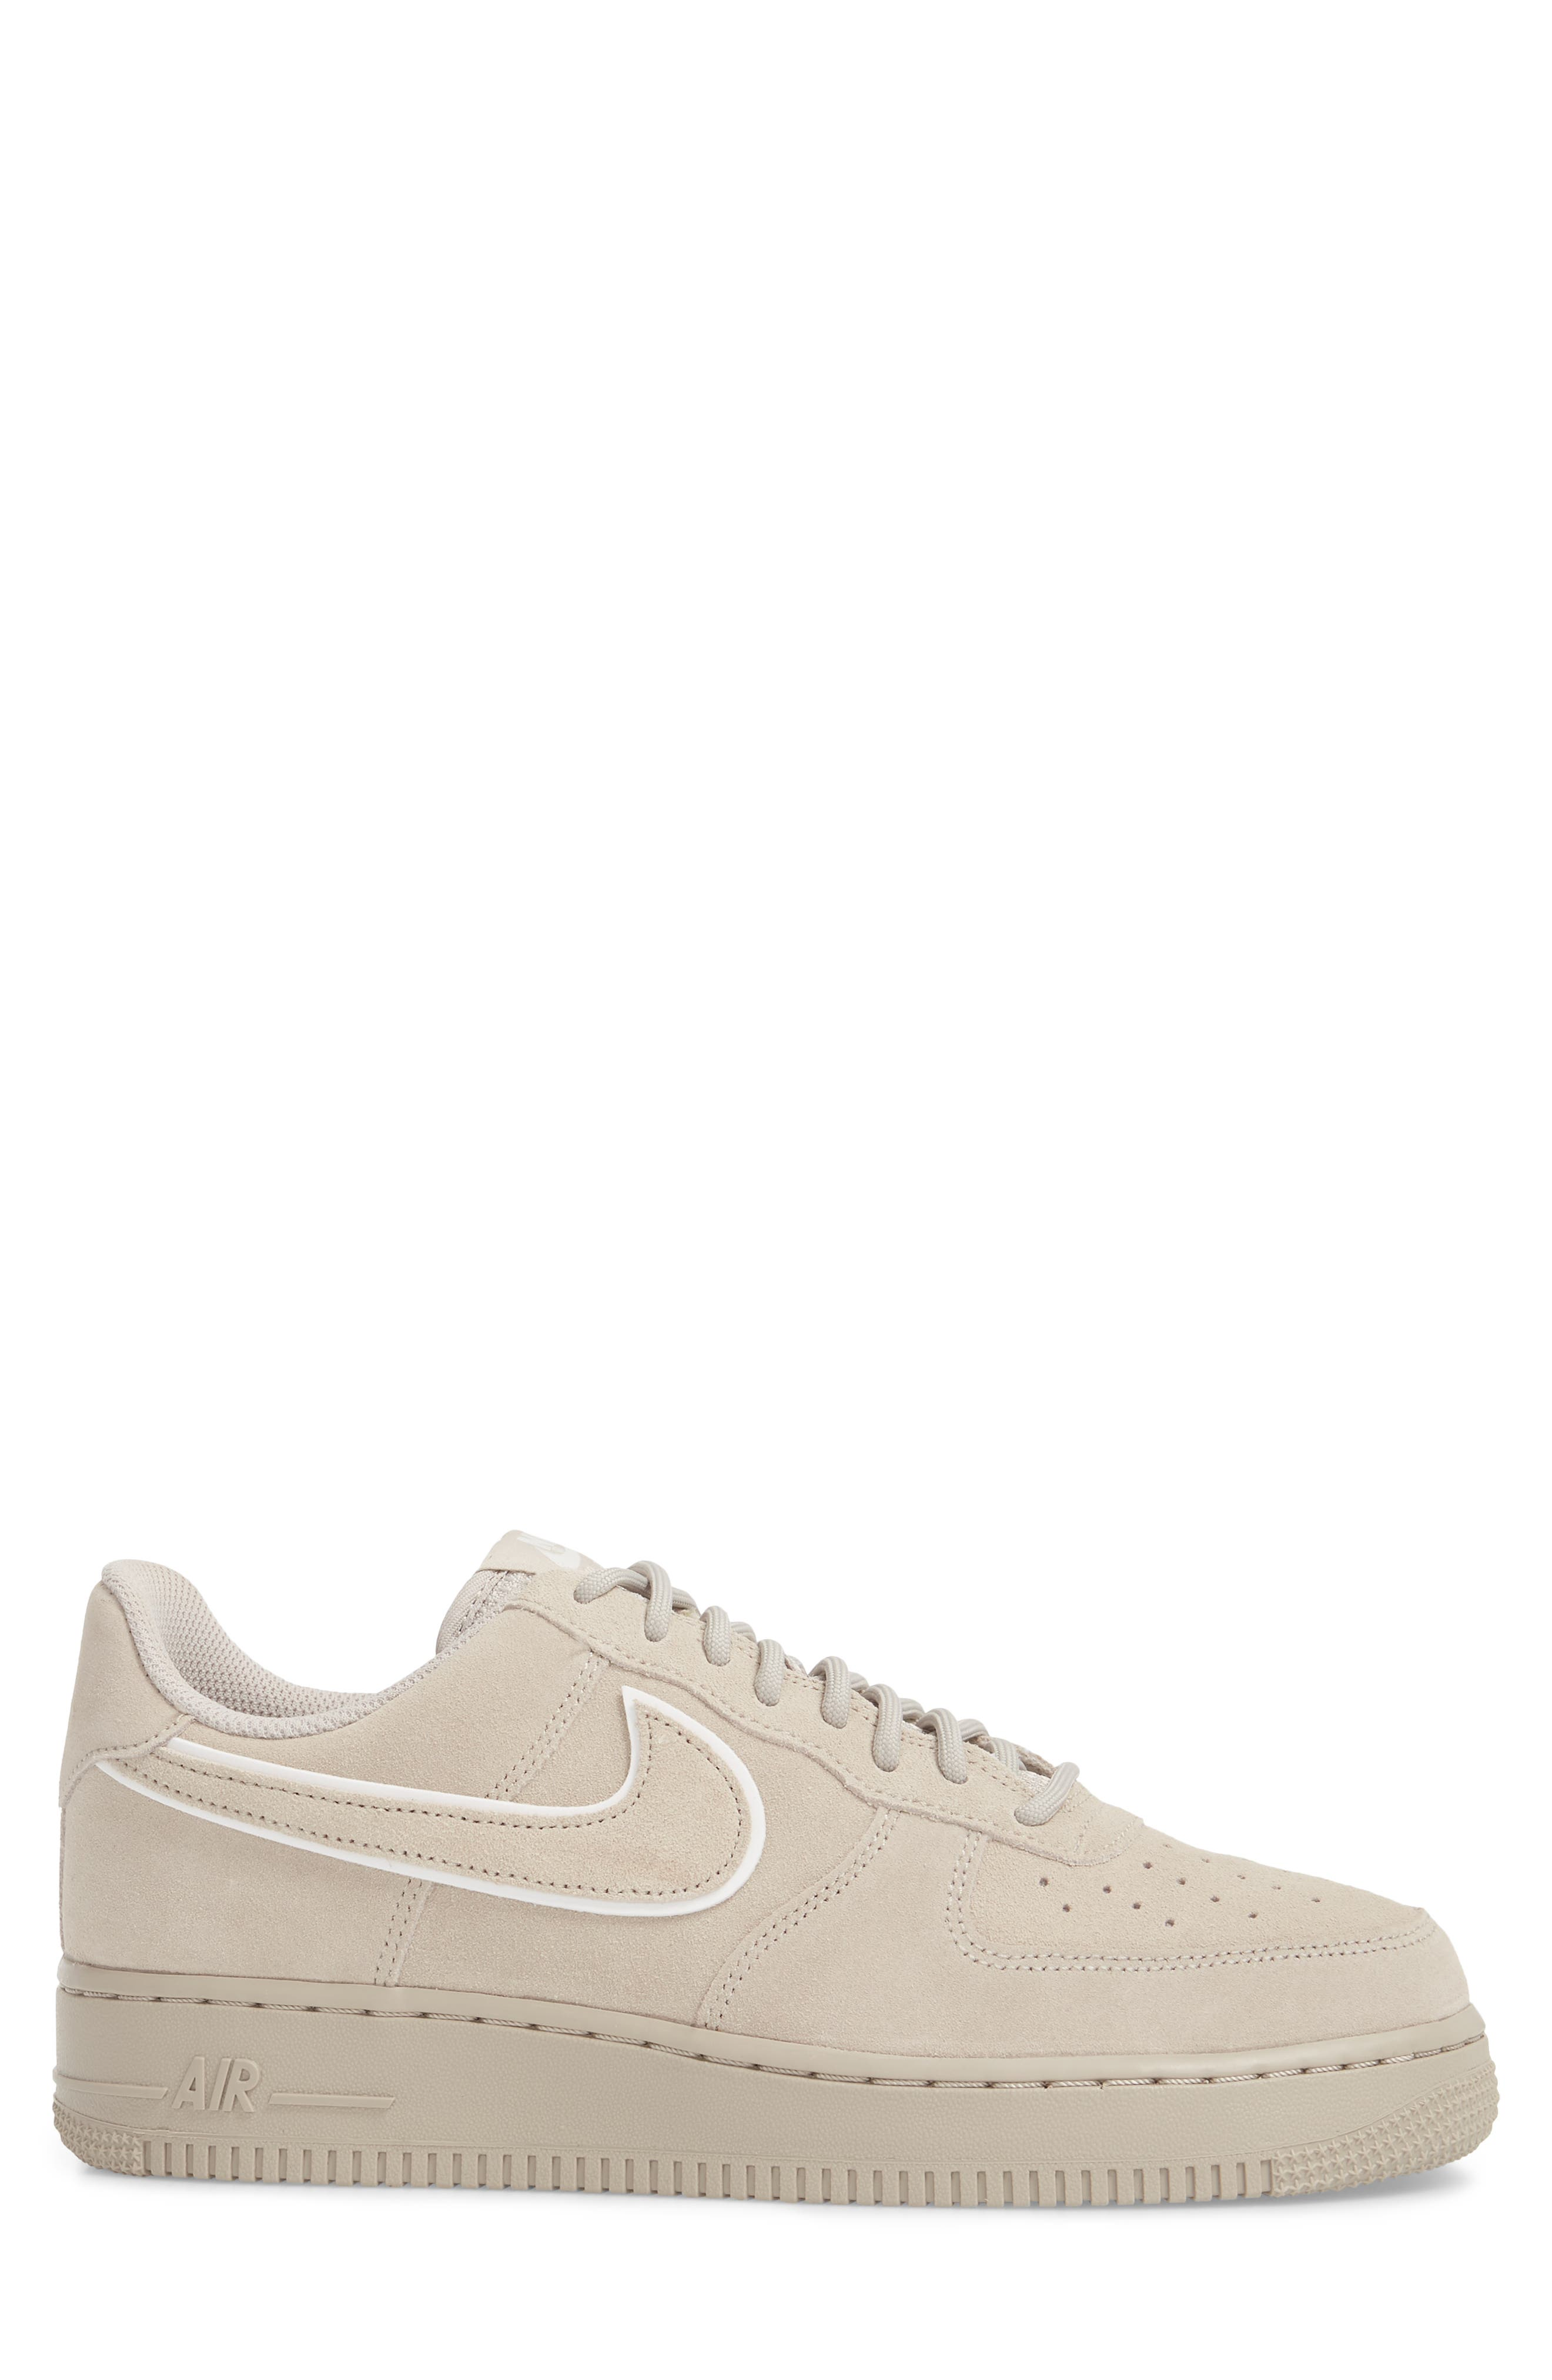 Air Force 1 '07 Low LV8 Sneaker,                             Alternate thumbnail 3, color,                             Moon Particle/ Sepia Stone